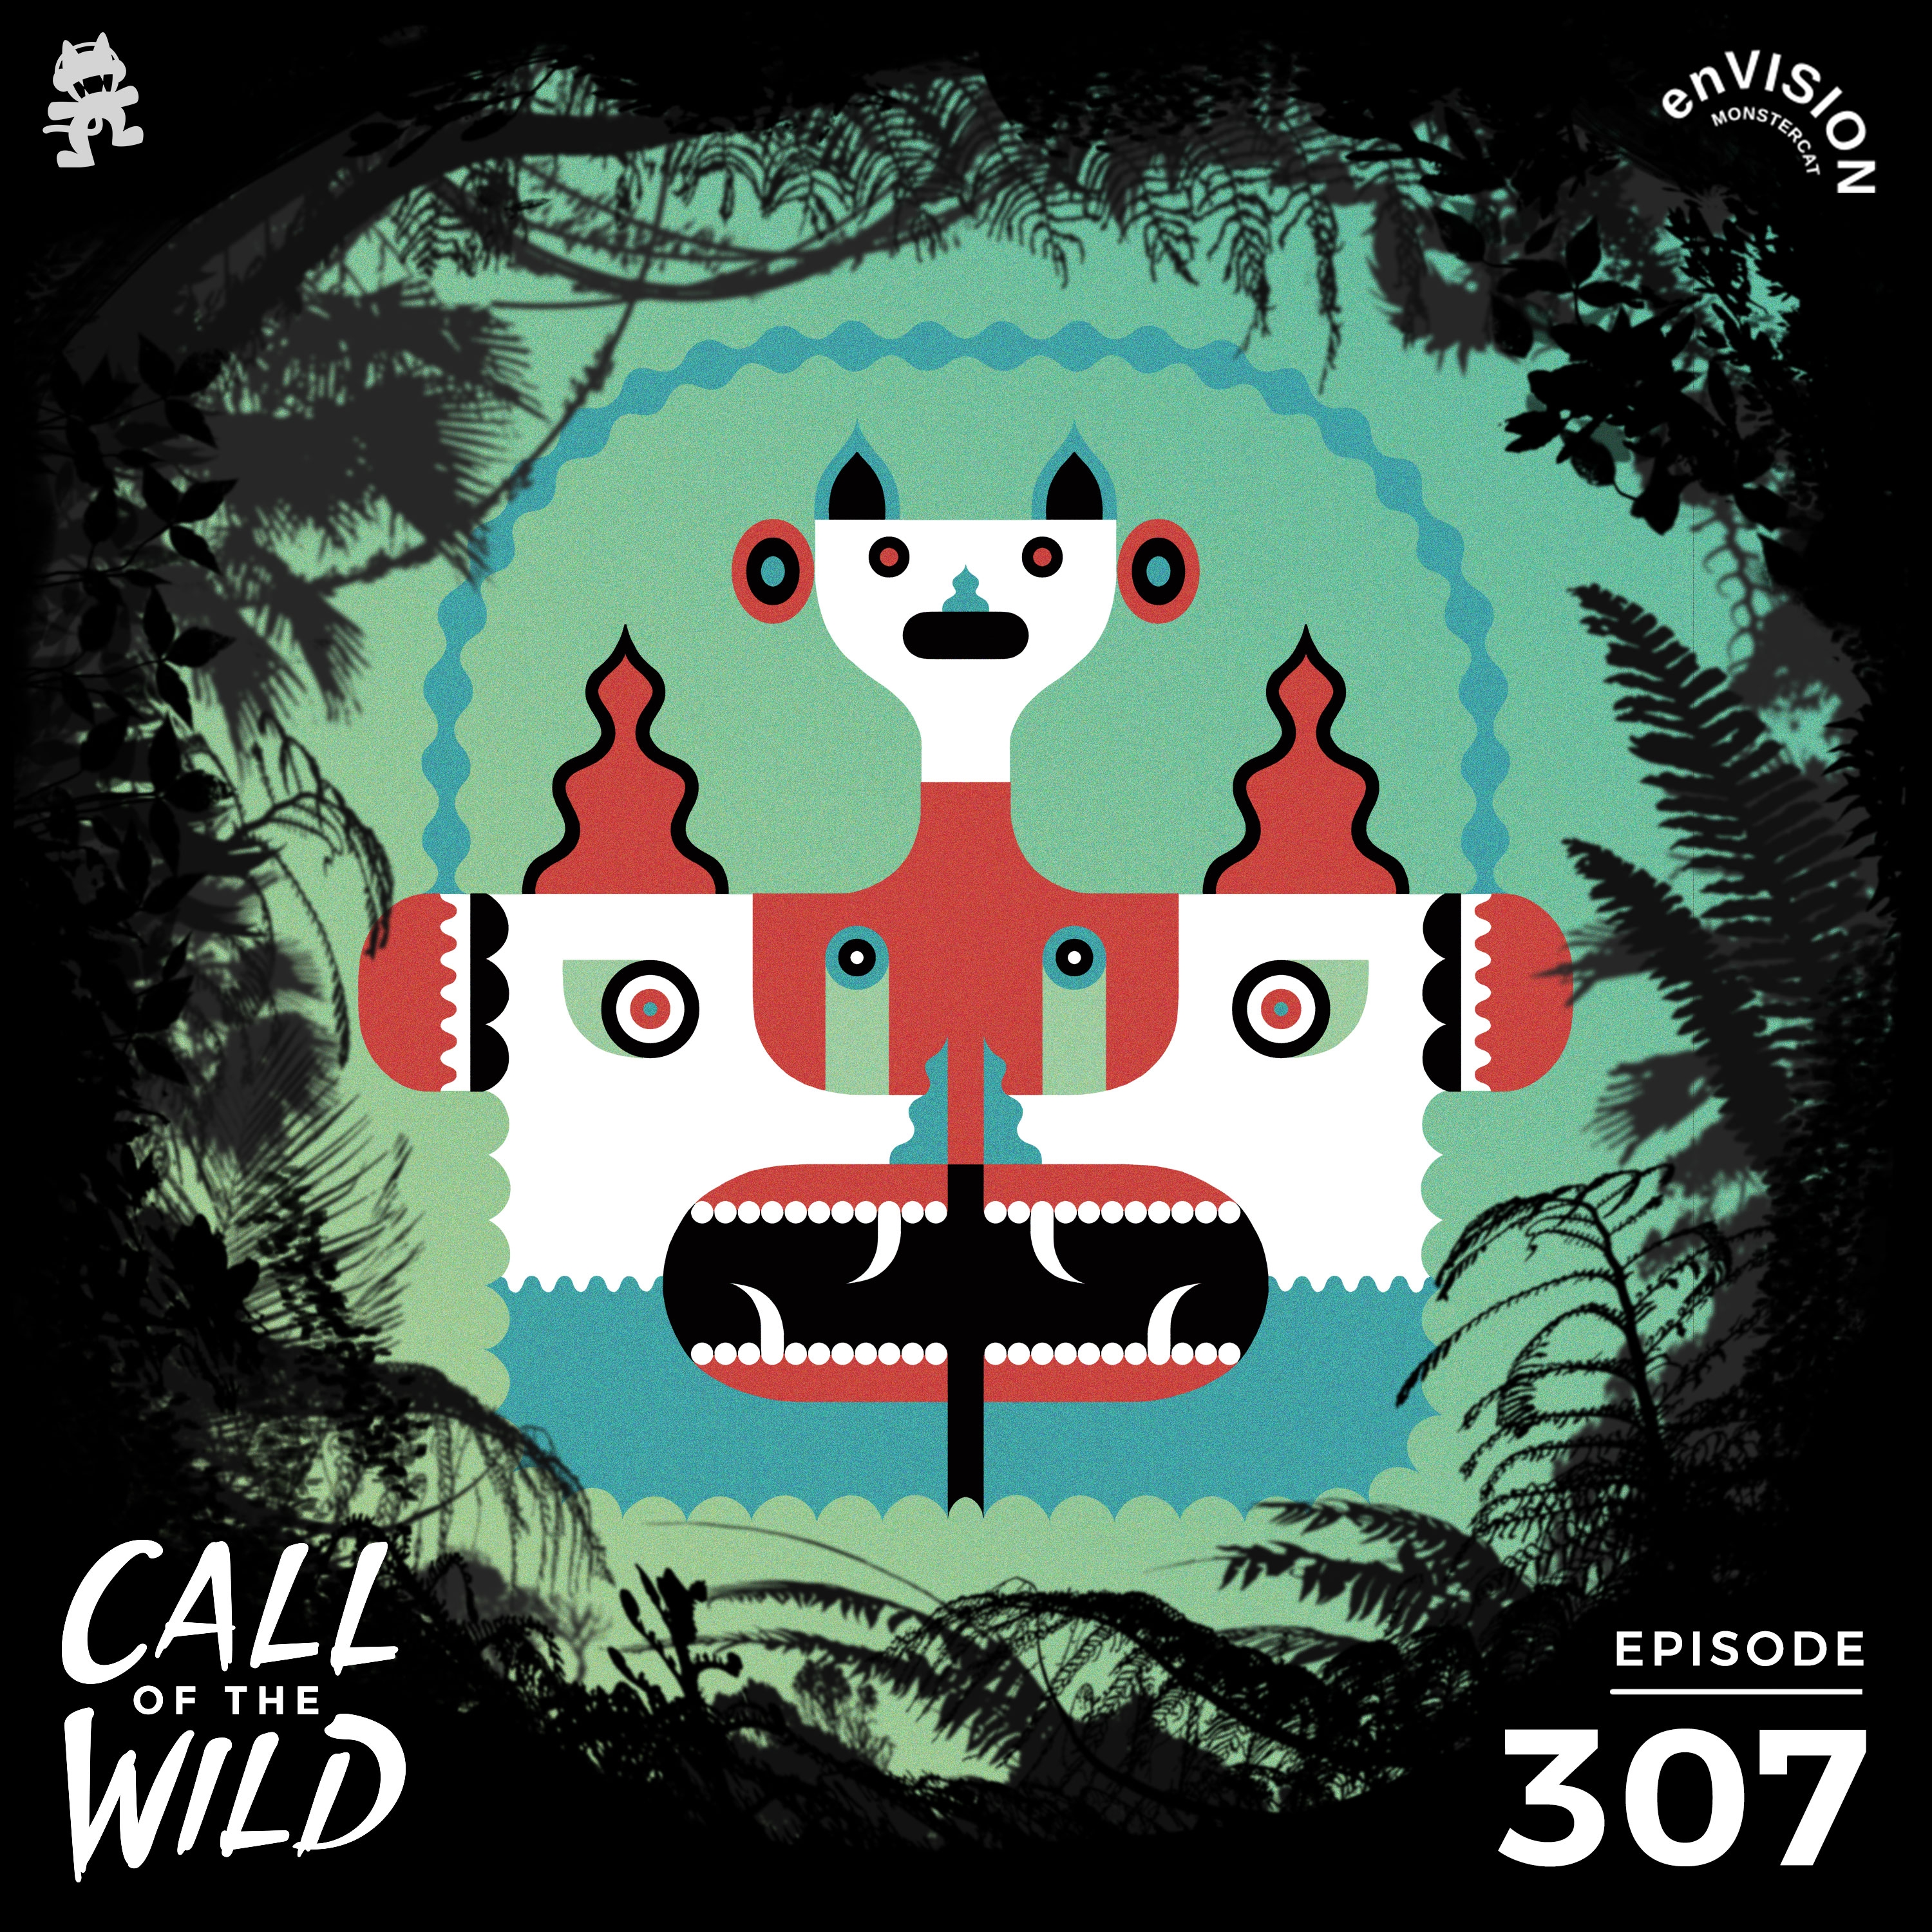 Monstercat: Call of the Wild - Episode 307